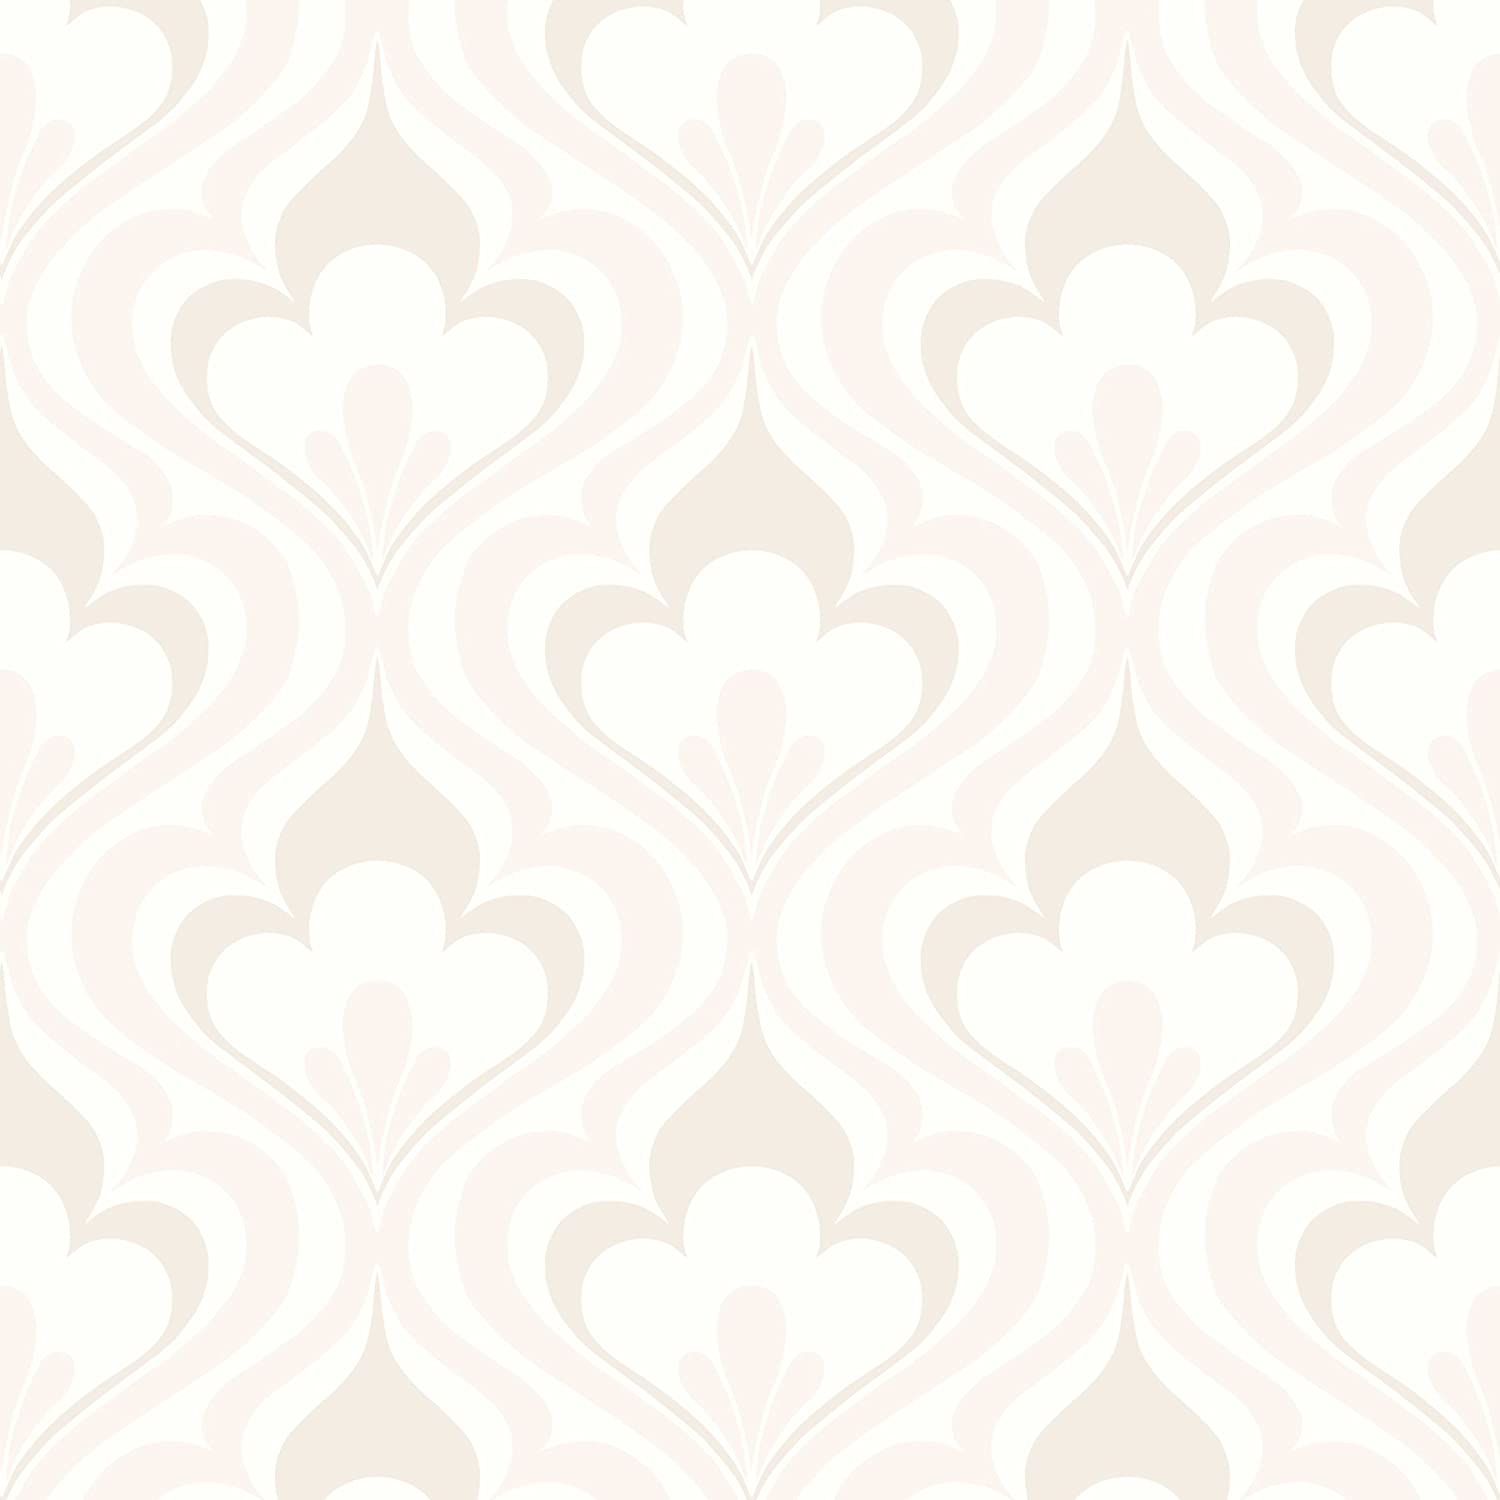 Beacon House 2535-20603 Lola Wallpaper Bargello Ogee Beige Don't El Paso Mall miss the campaign